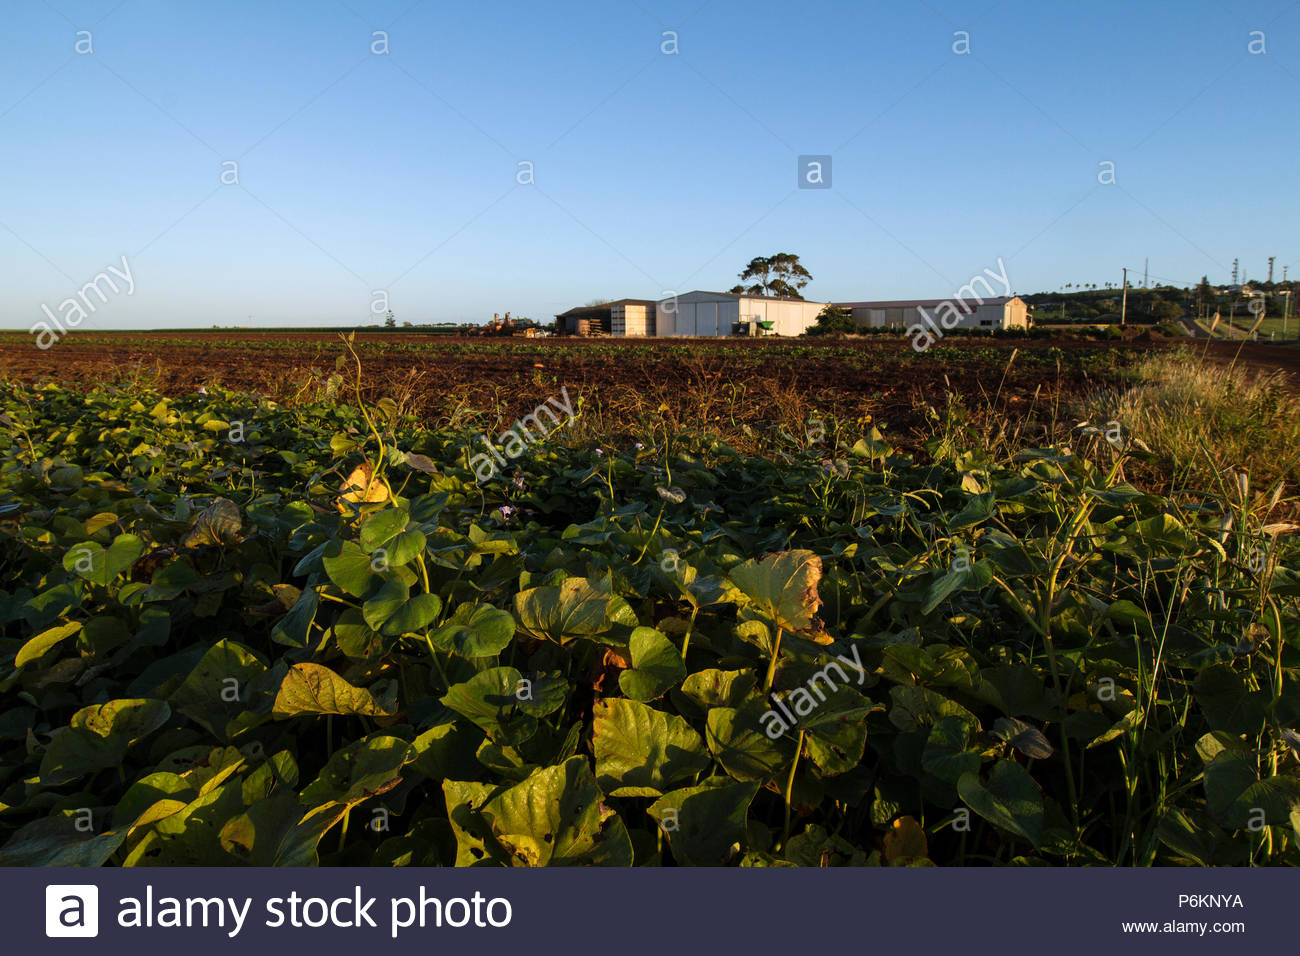 Rows on a farm showing sweet potatoes growing at Bundaberg in Australia. - Stock Image